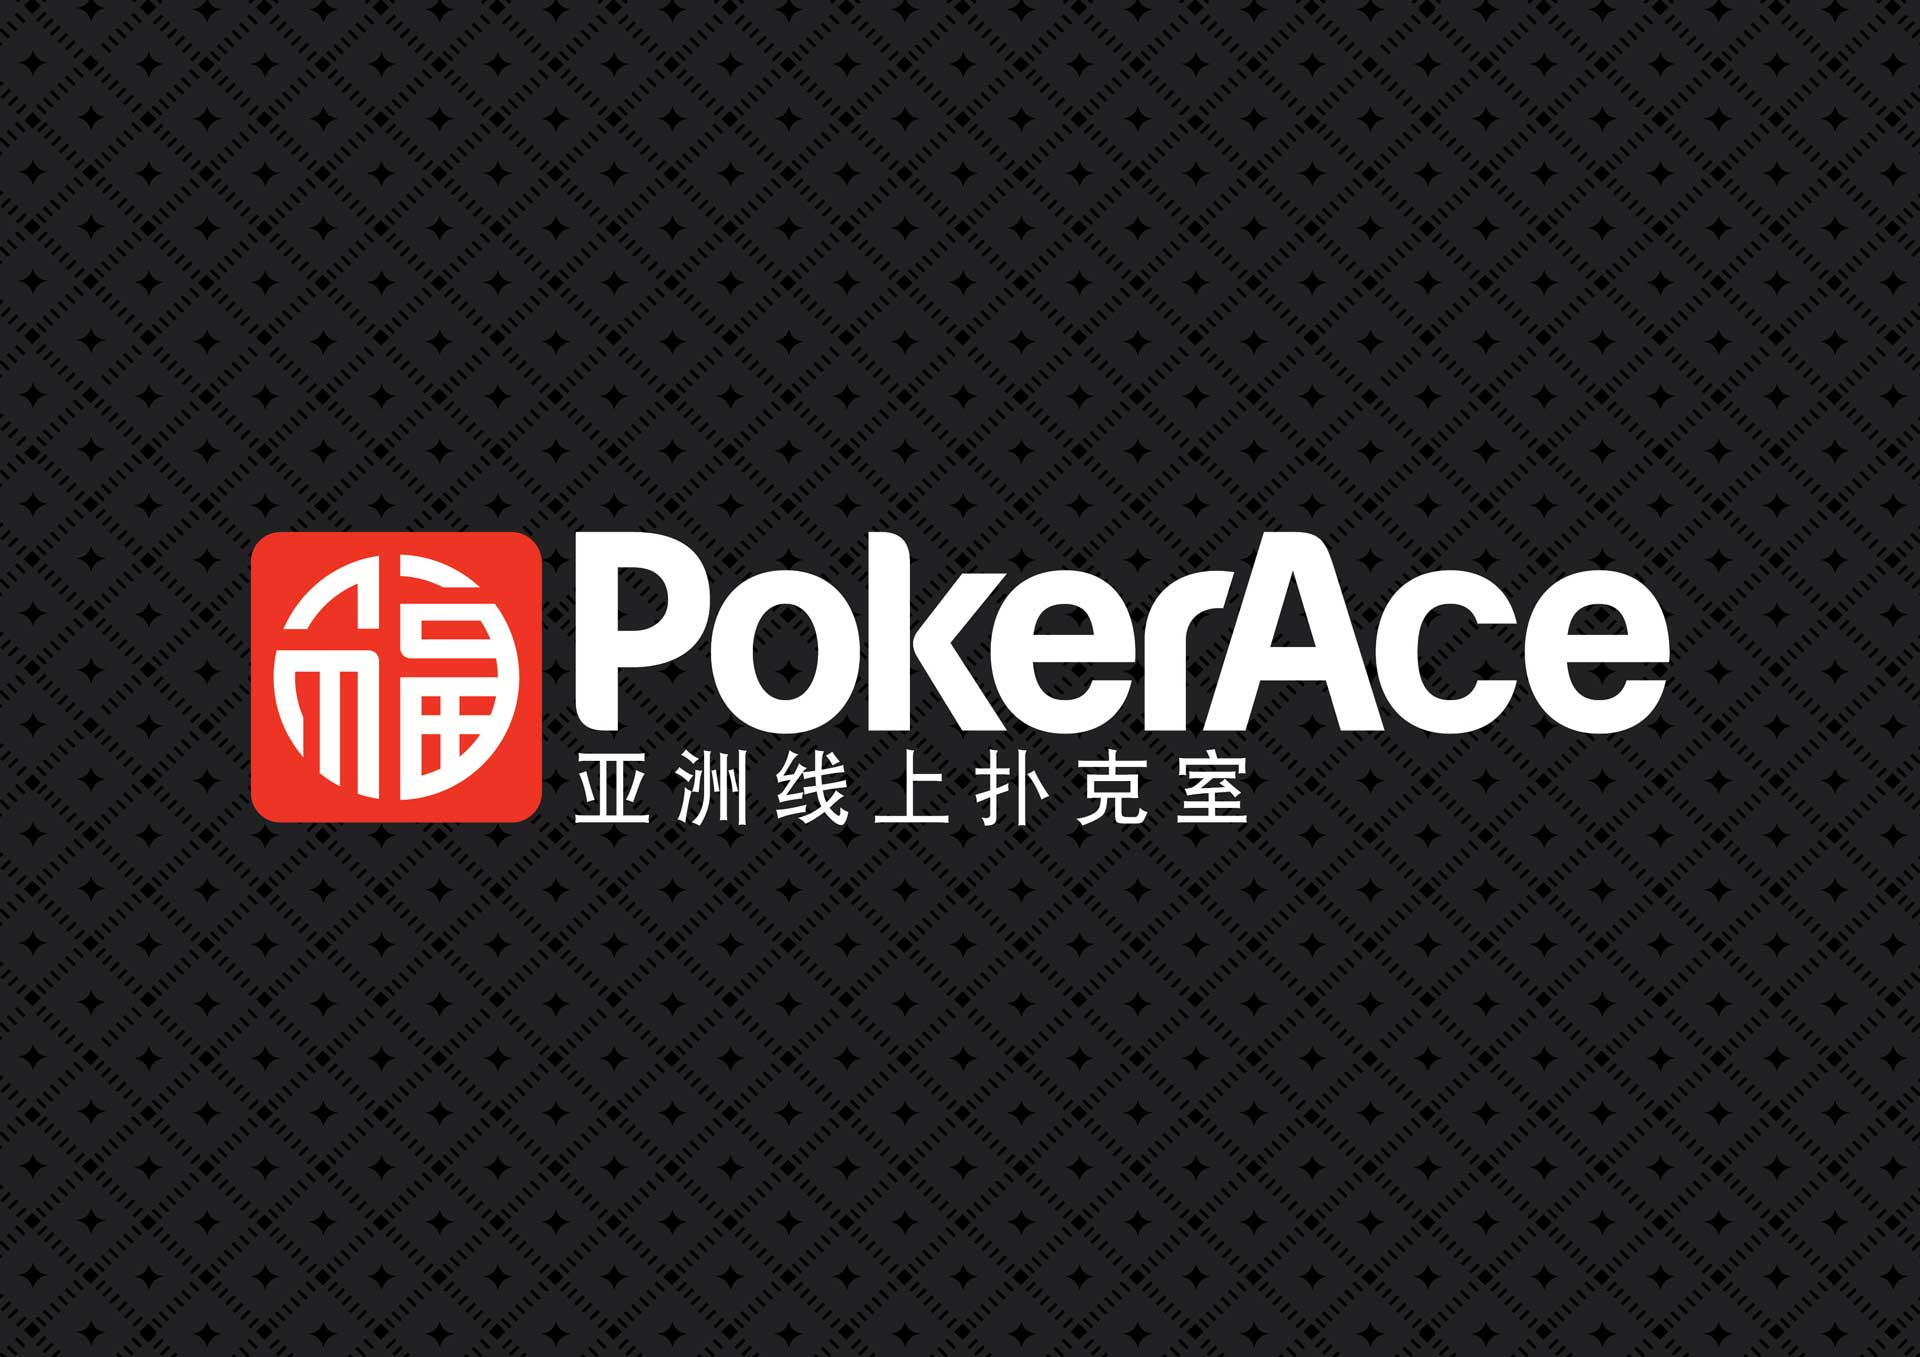 pokerace-brand-guidelines-1